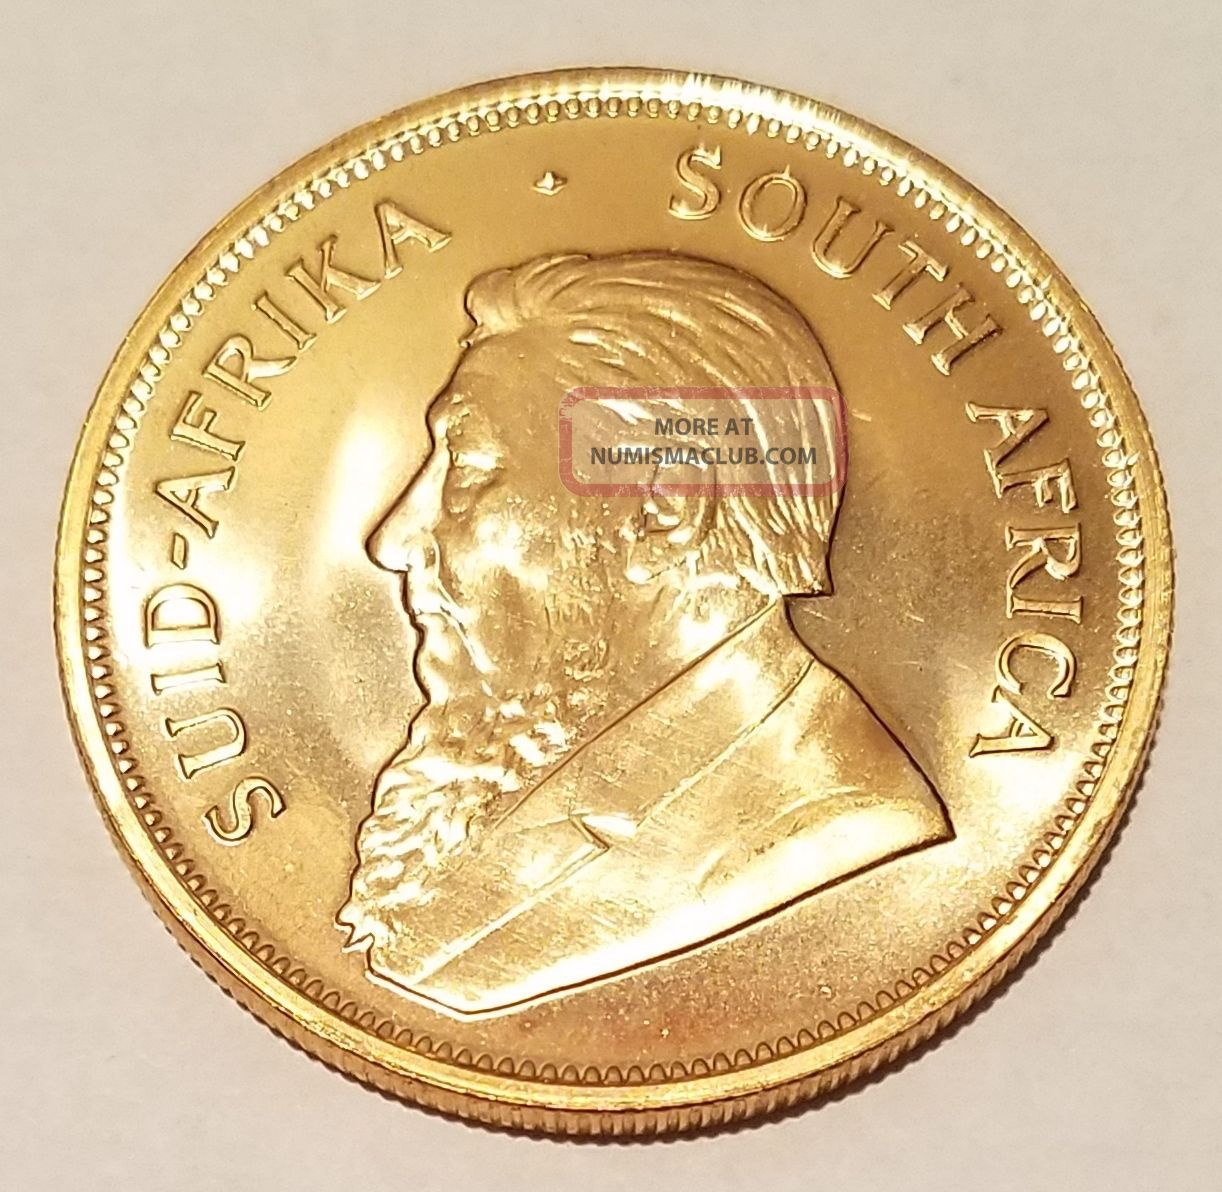 1978 South African Krugerrand 1oz.  999 Fine Gold Coin Bullion Gold photo